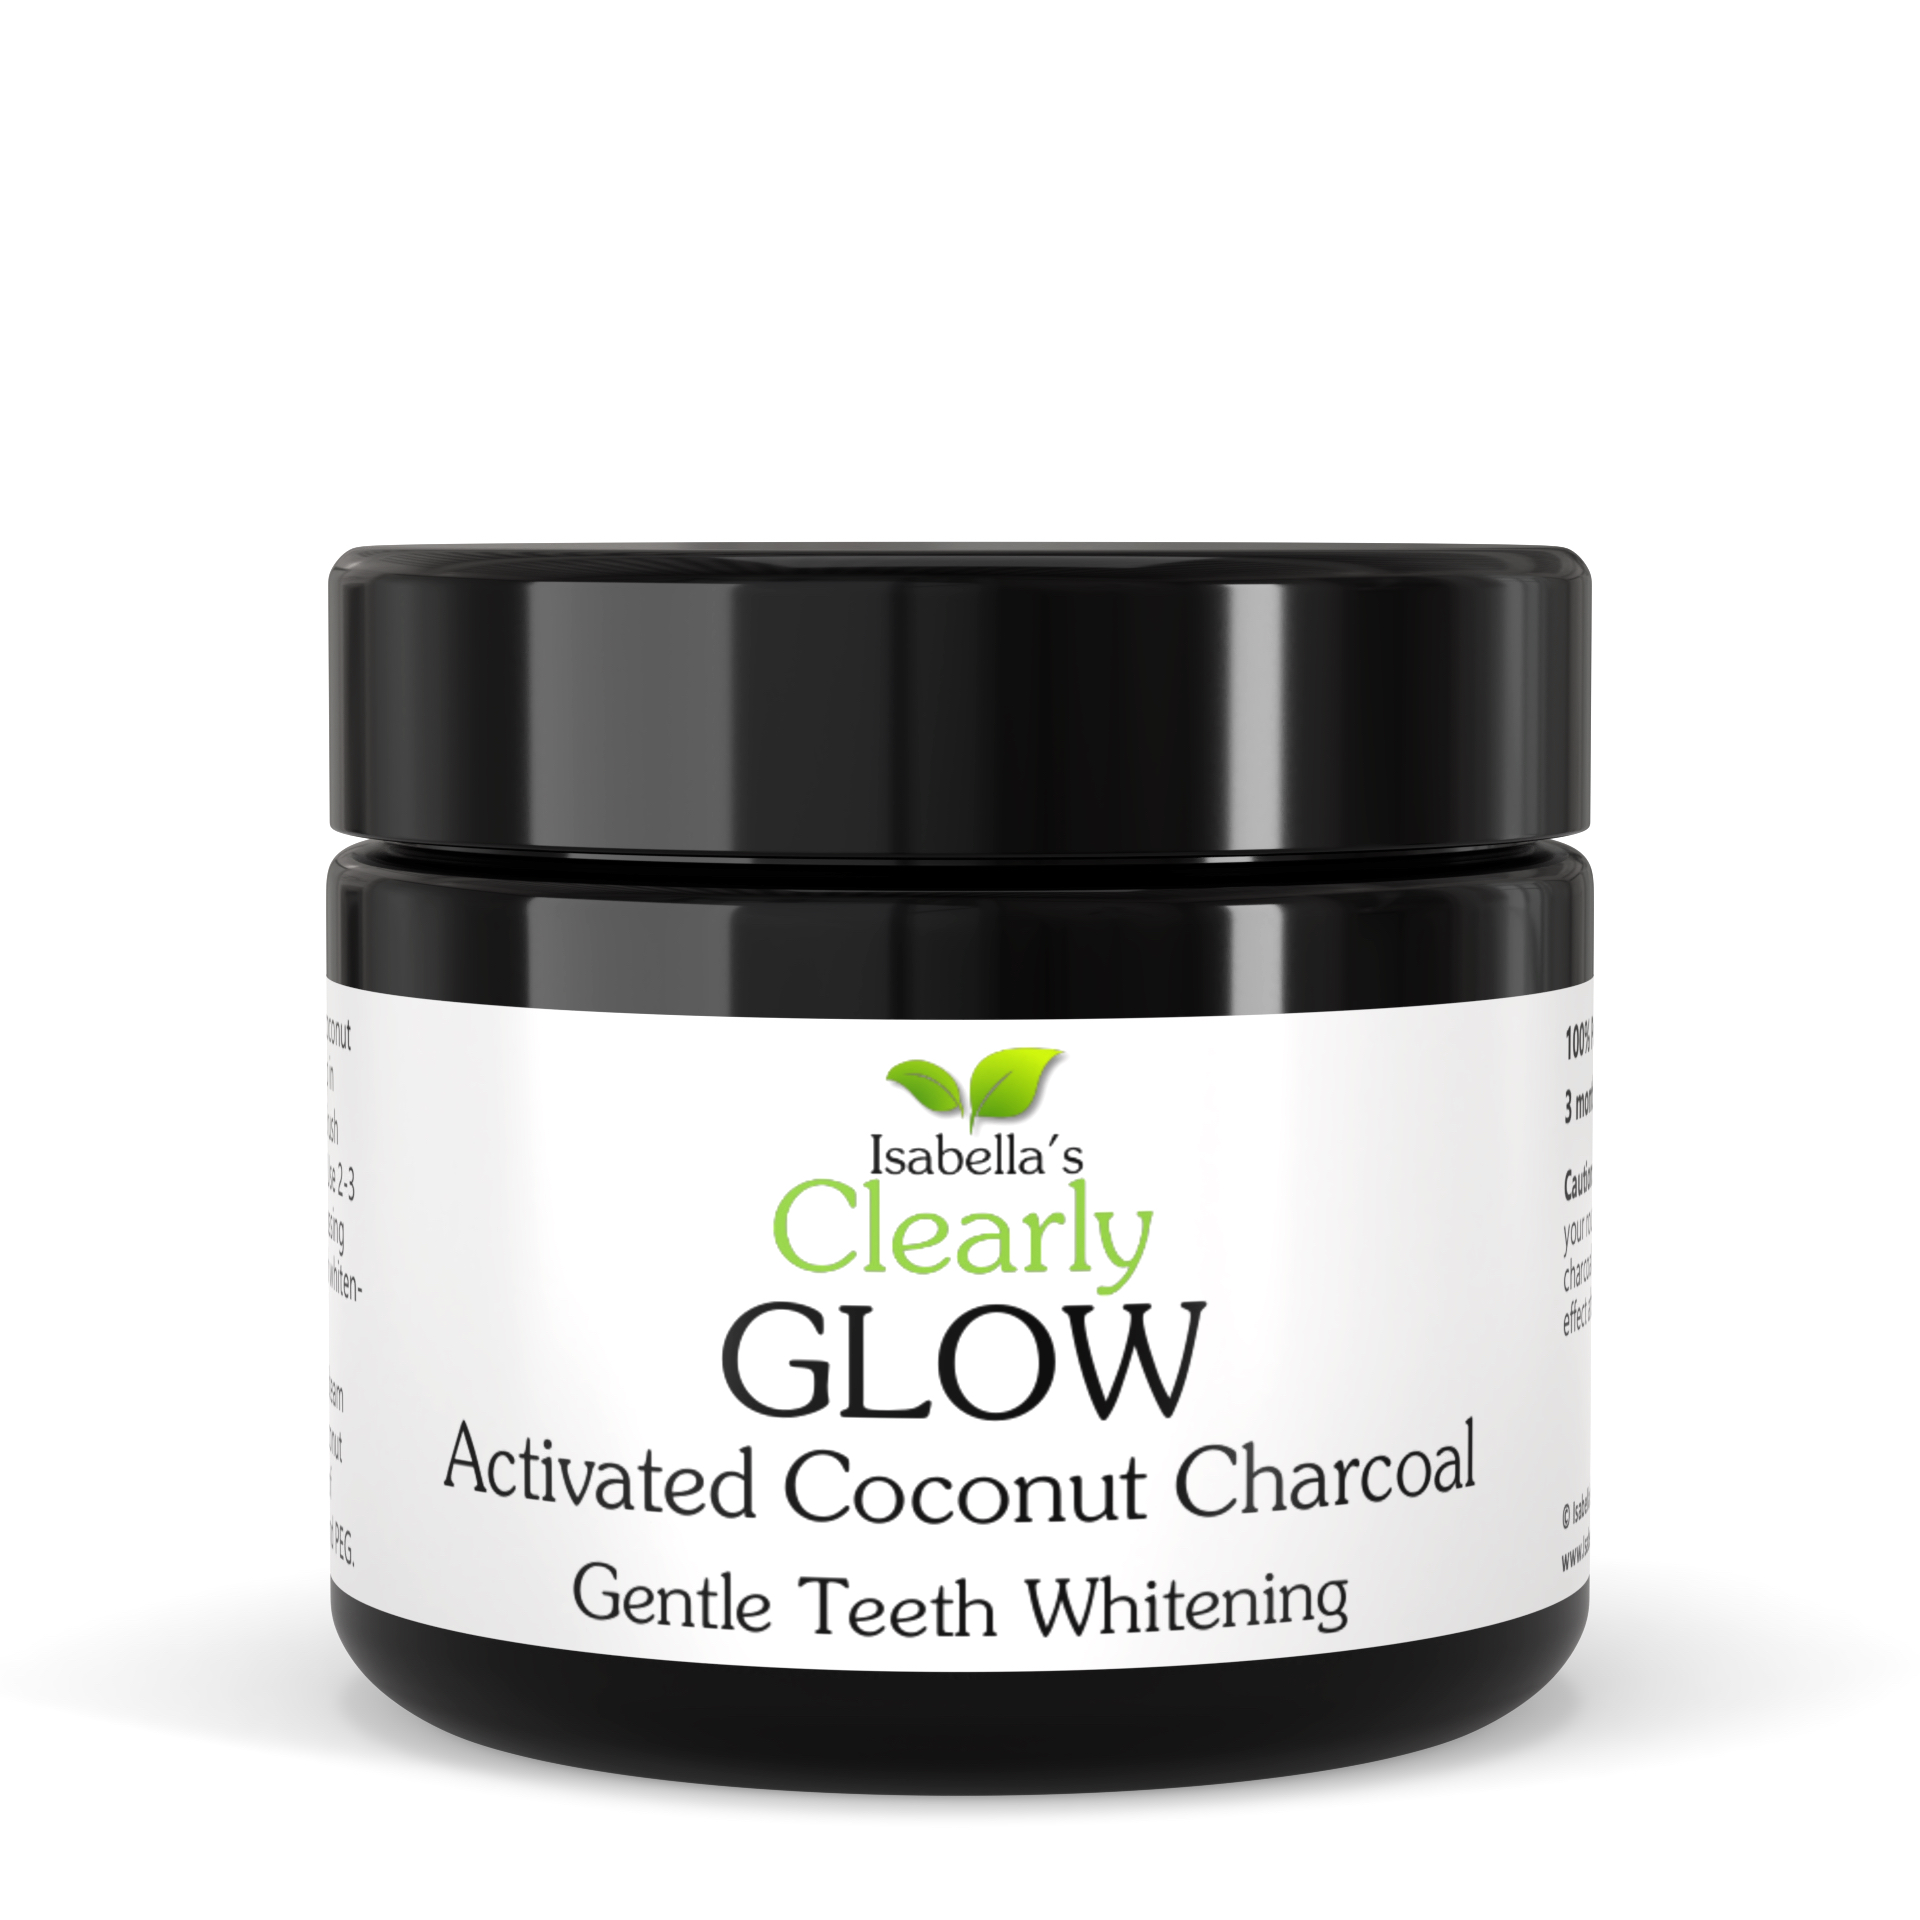 Clearly GLOW Coconut, Teeth Whitening Activated Charcoal